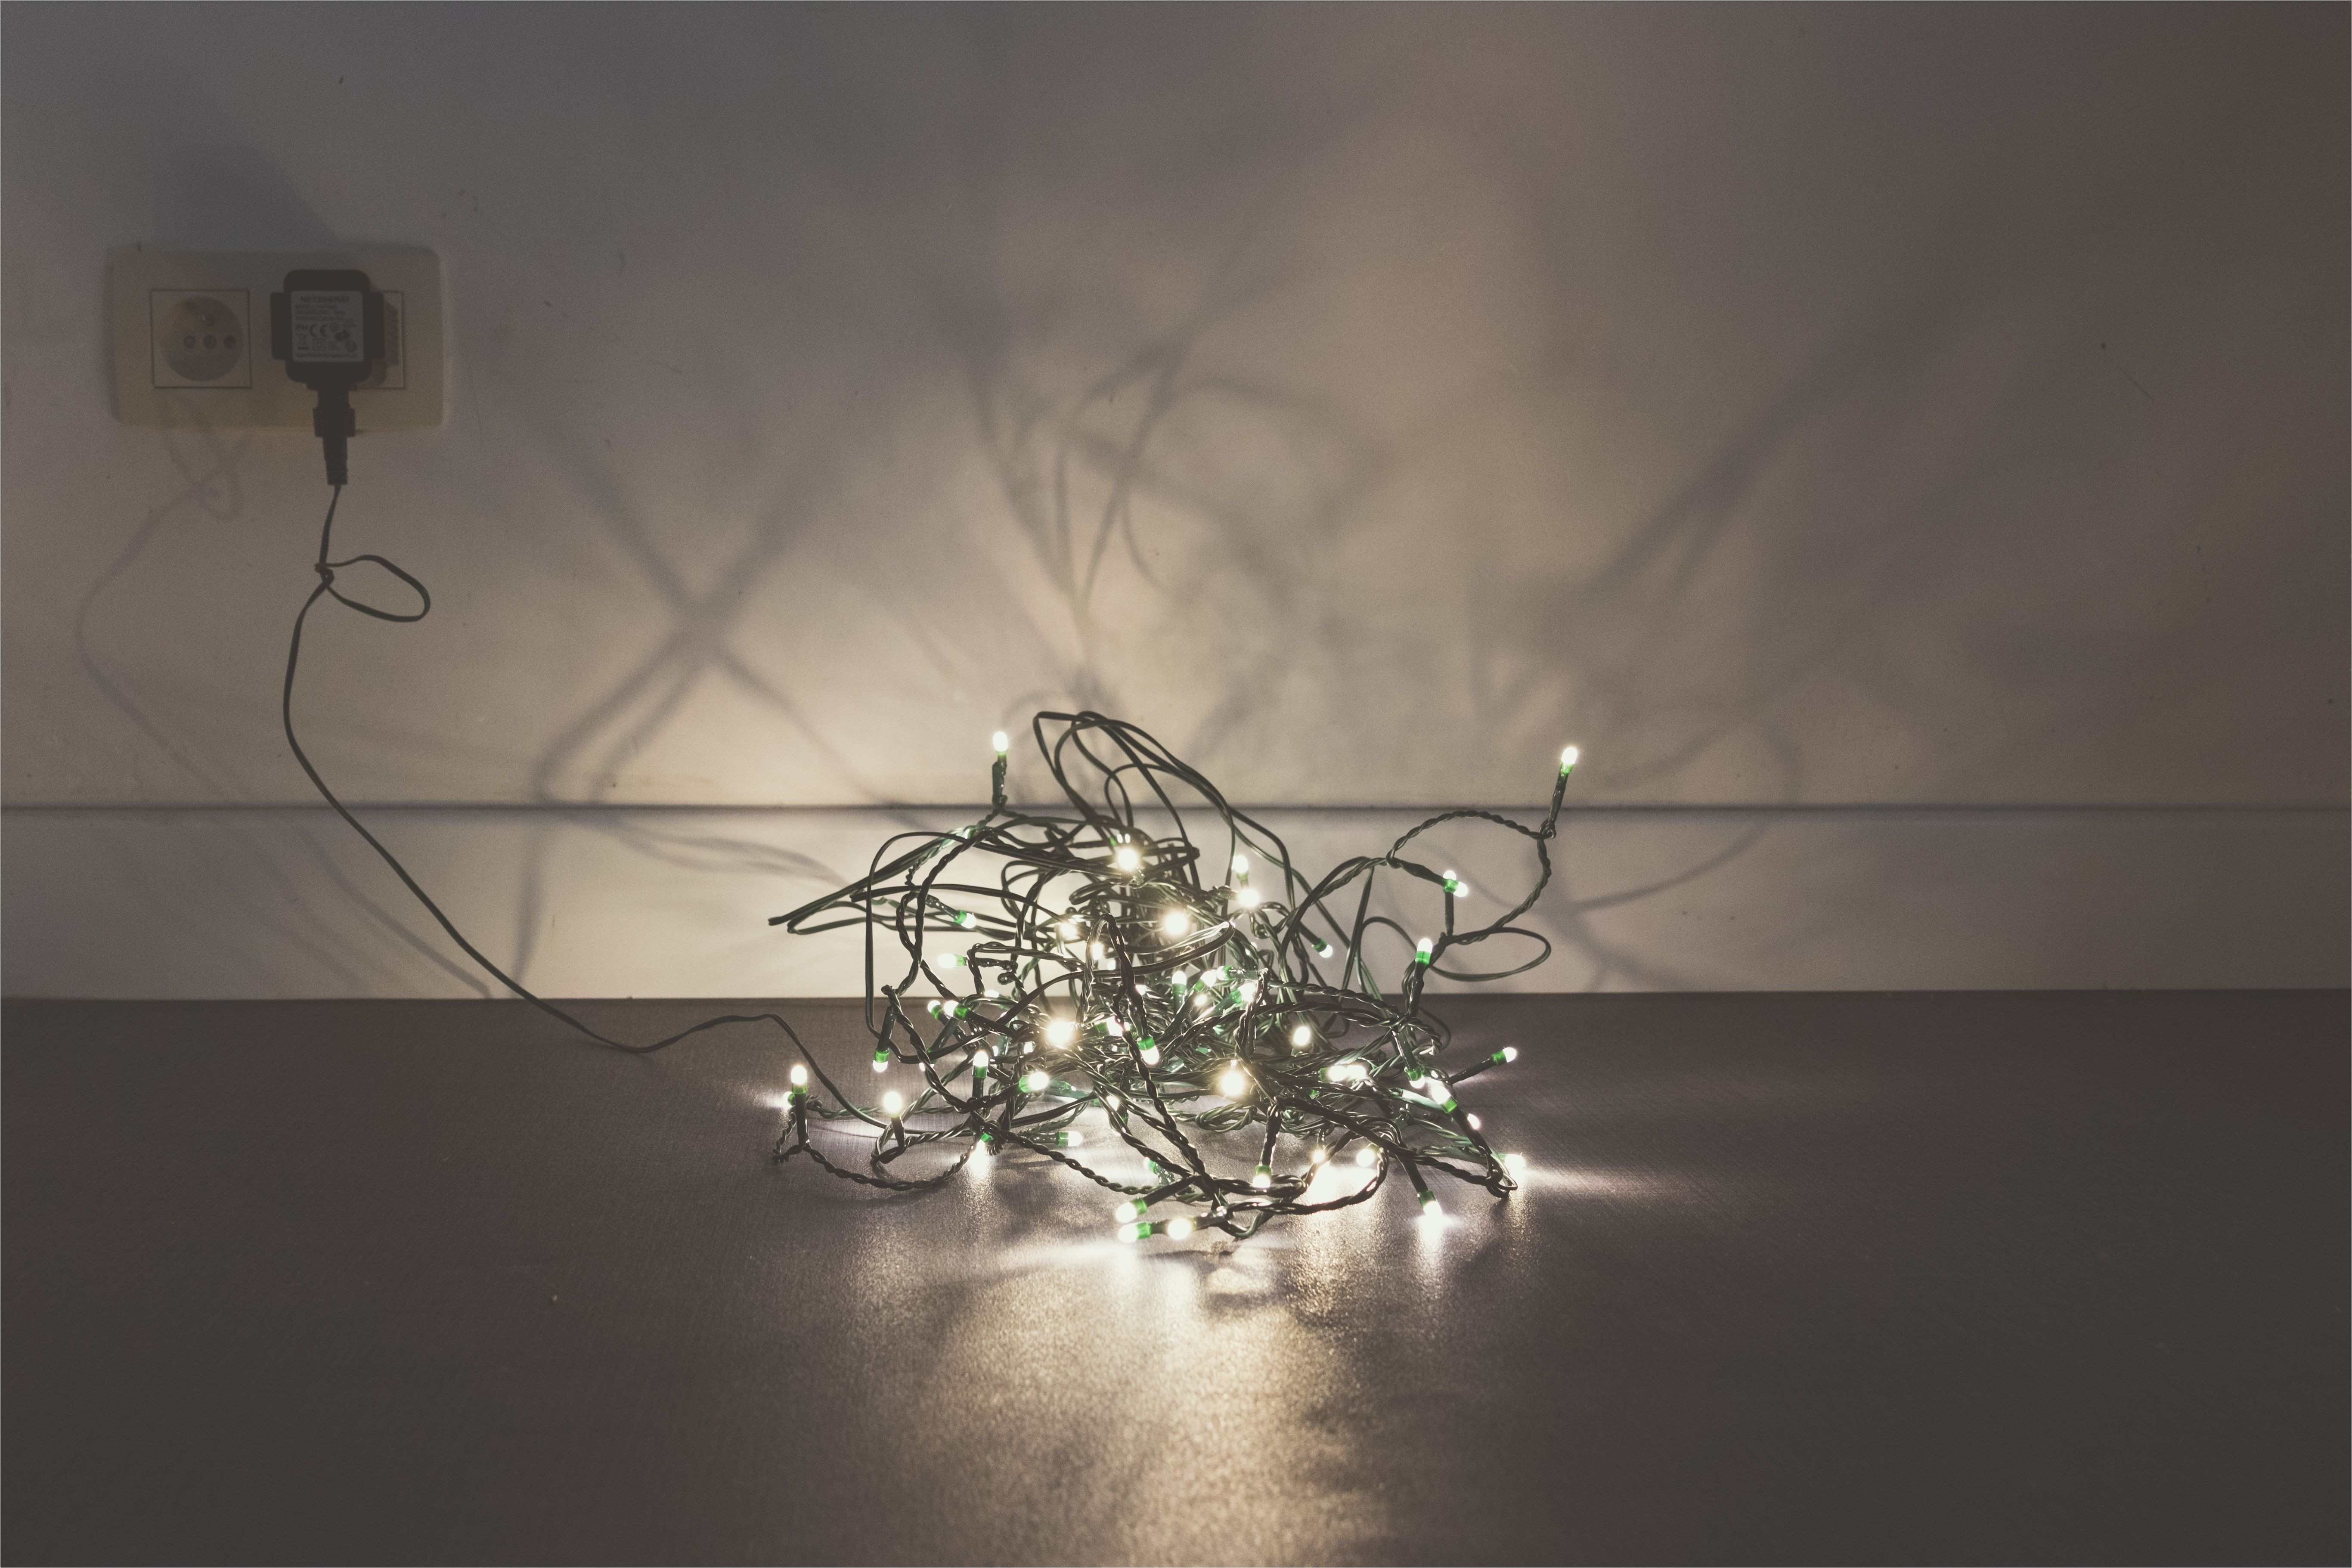 view of fairy lights on ground indoors 702610859 594ad42d3df78cae8198a6cd jpg